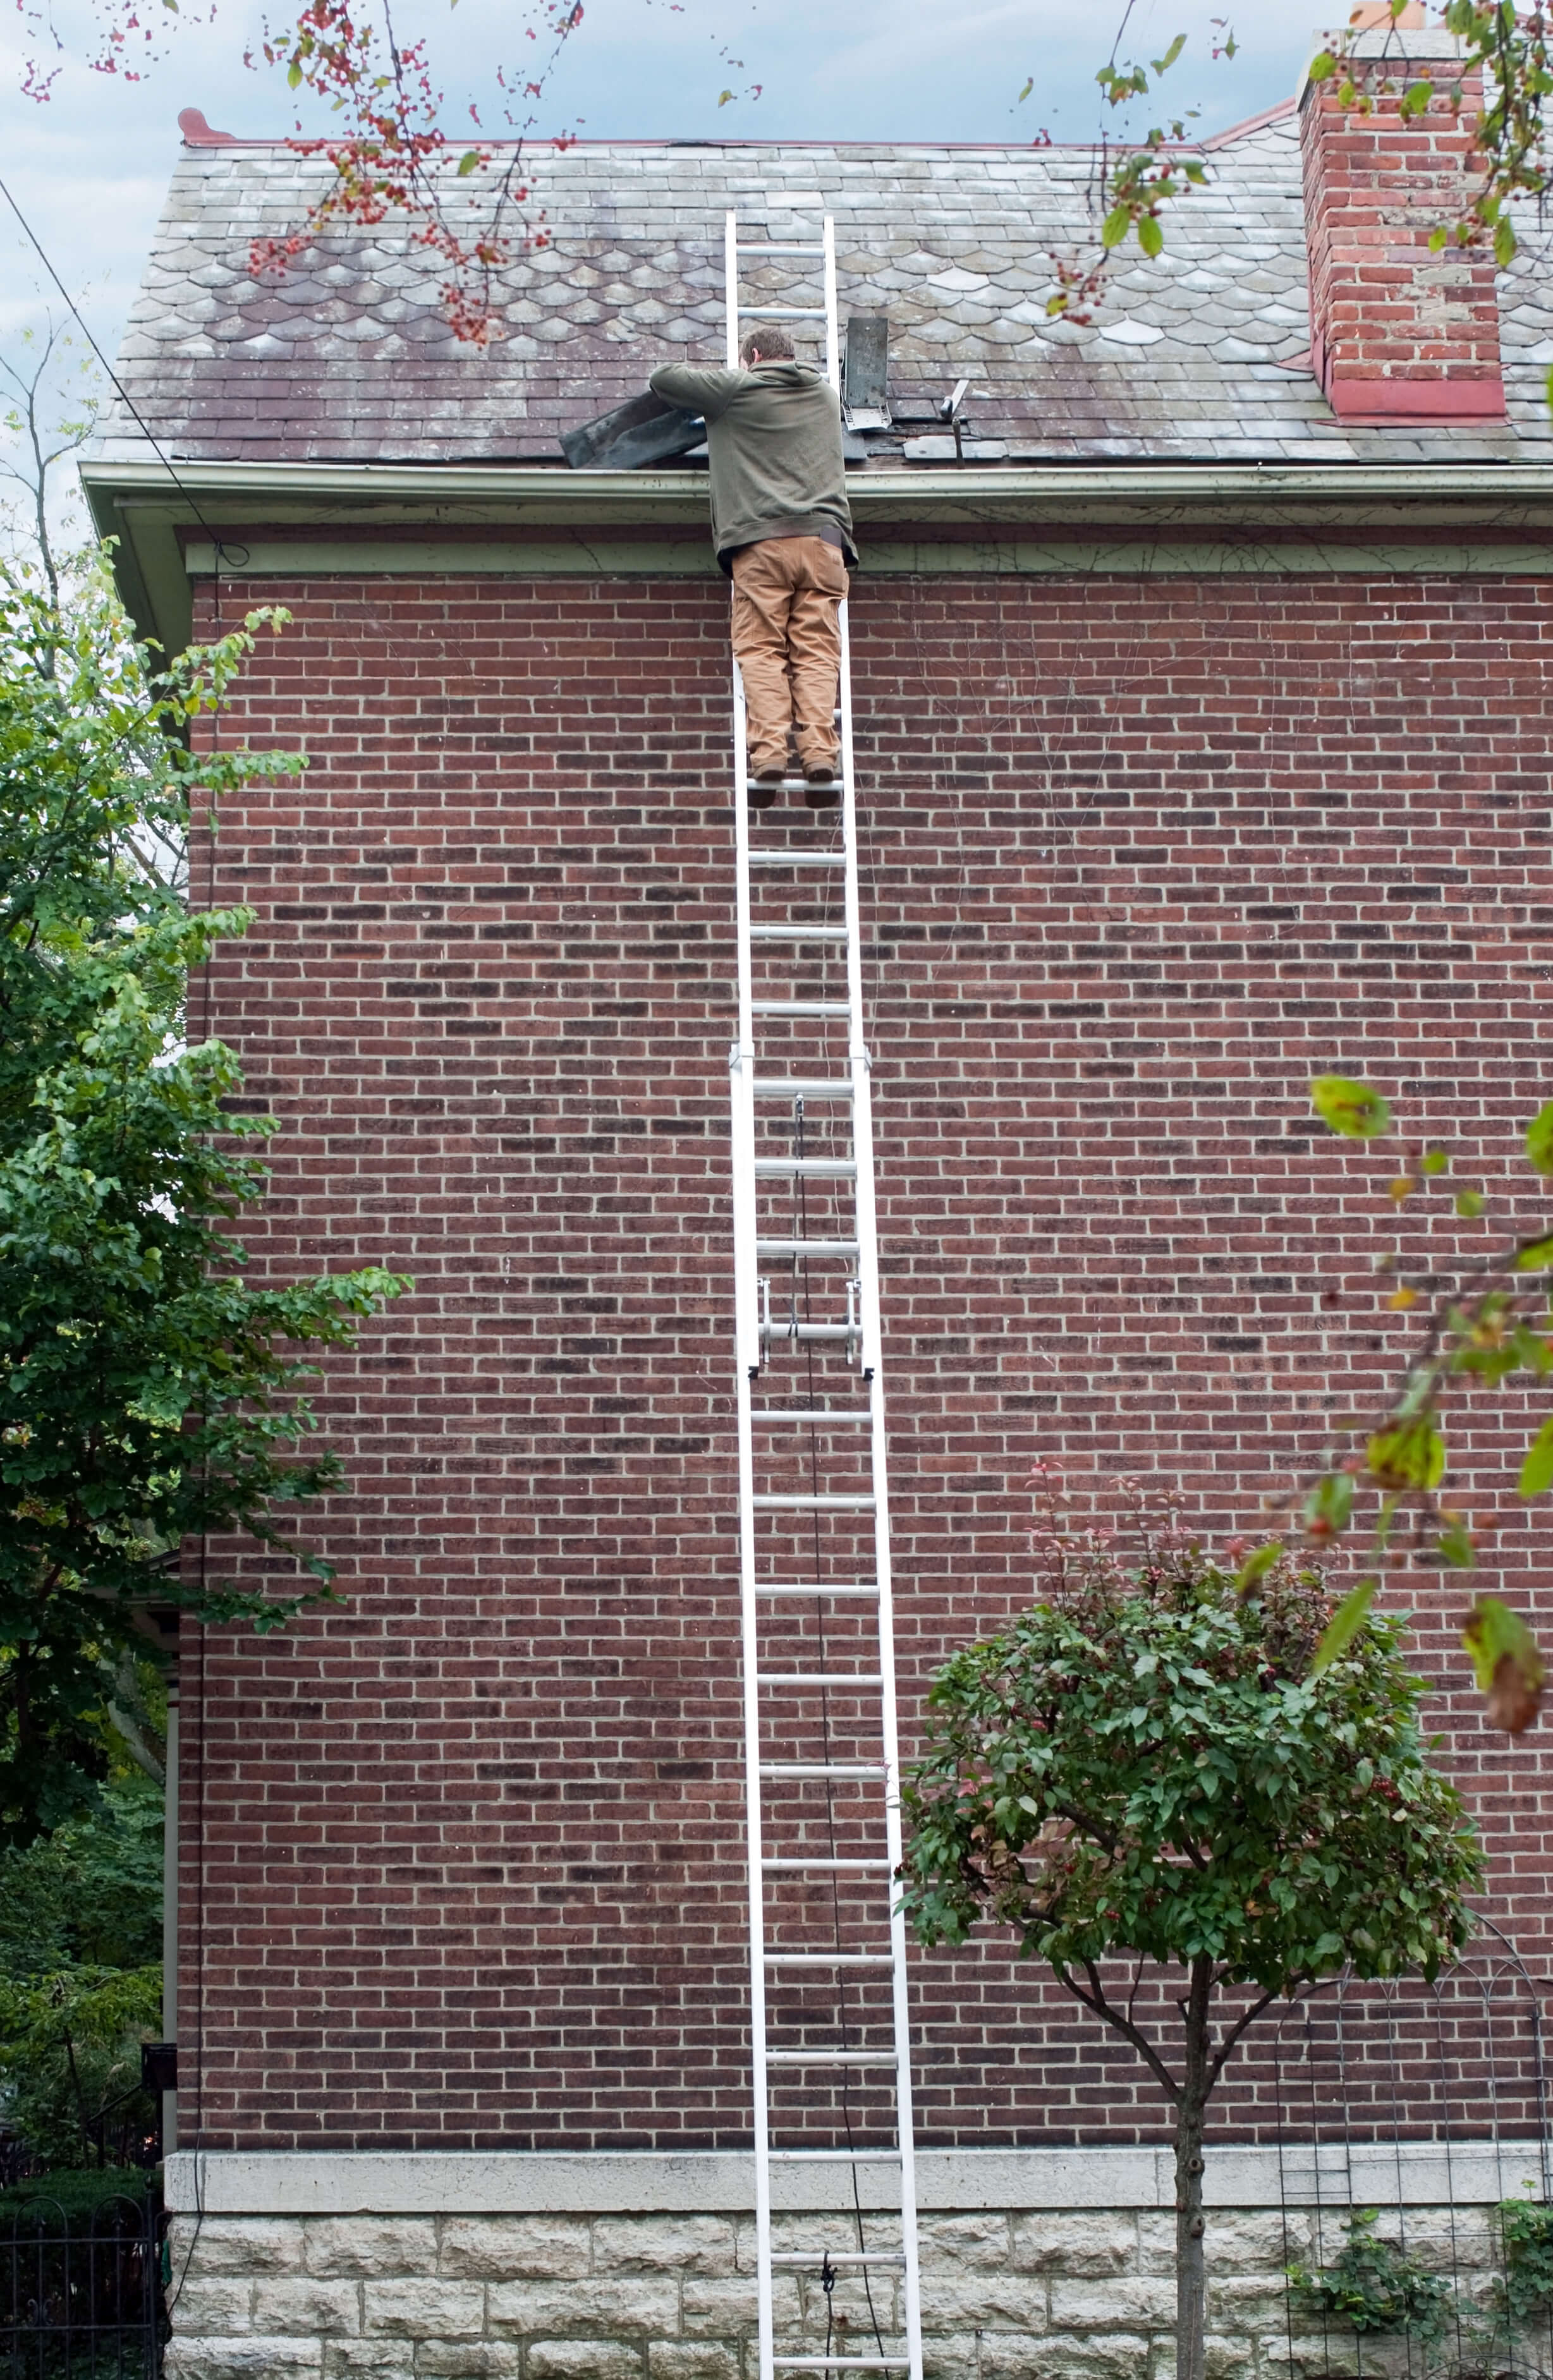 Falls from ladders a major cause of injury.